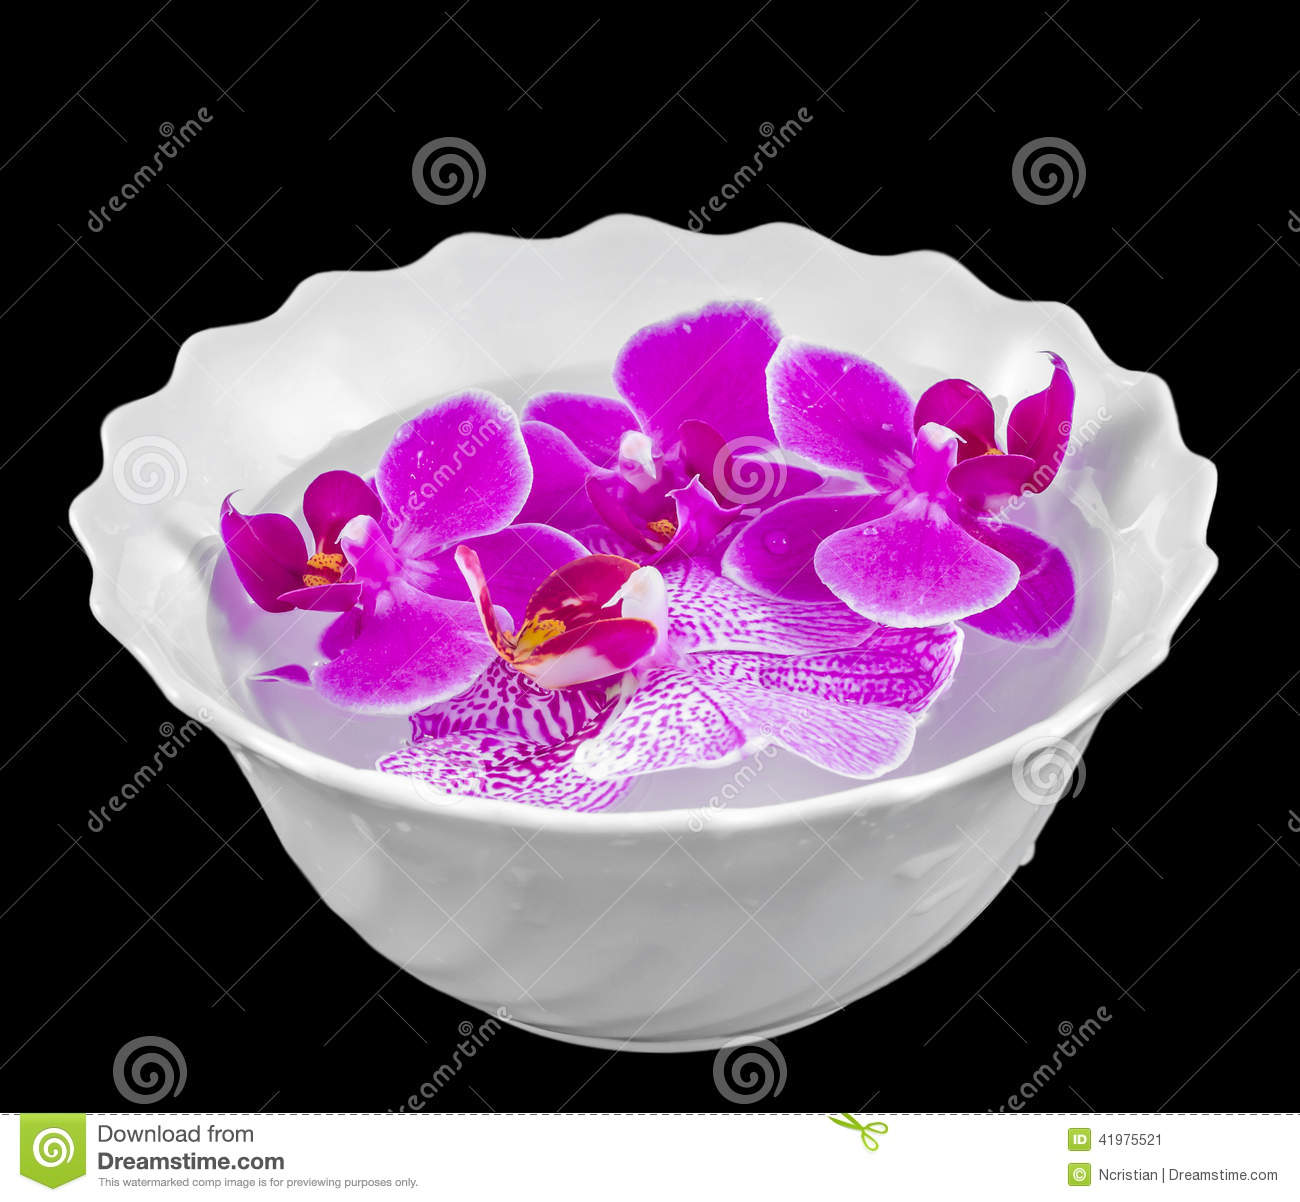 White Orchid Water Pink: Colored Orchid Flowers, Mauve, Pink, Purple In A White